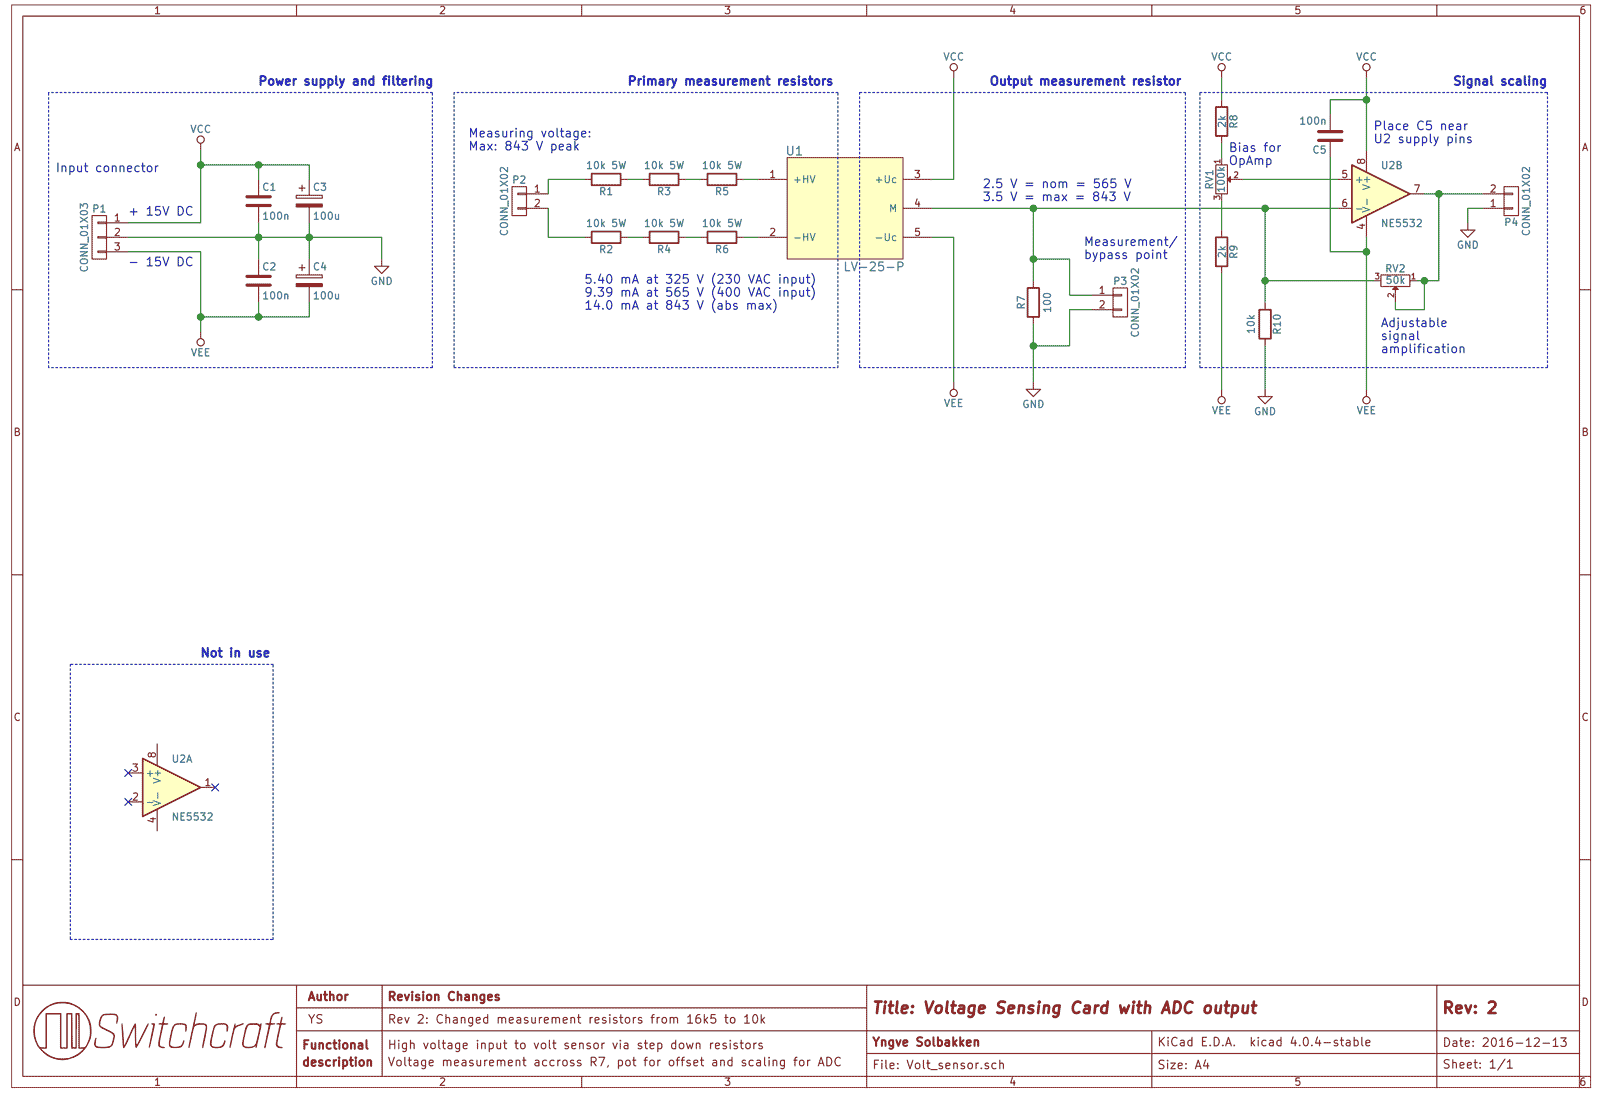 Full schematic of the voltage sensing card. The opamp in the lower left corner is the second opamp in the opamp chip which is not in use.